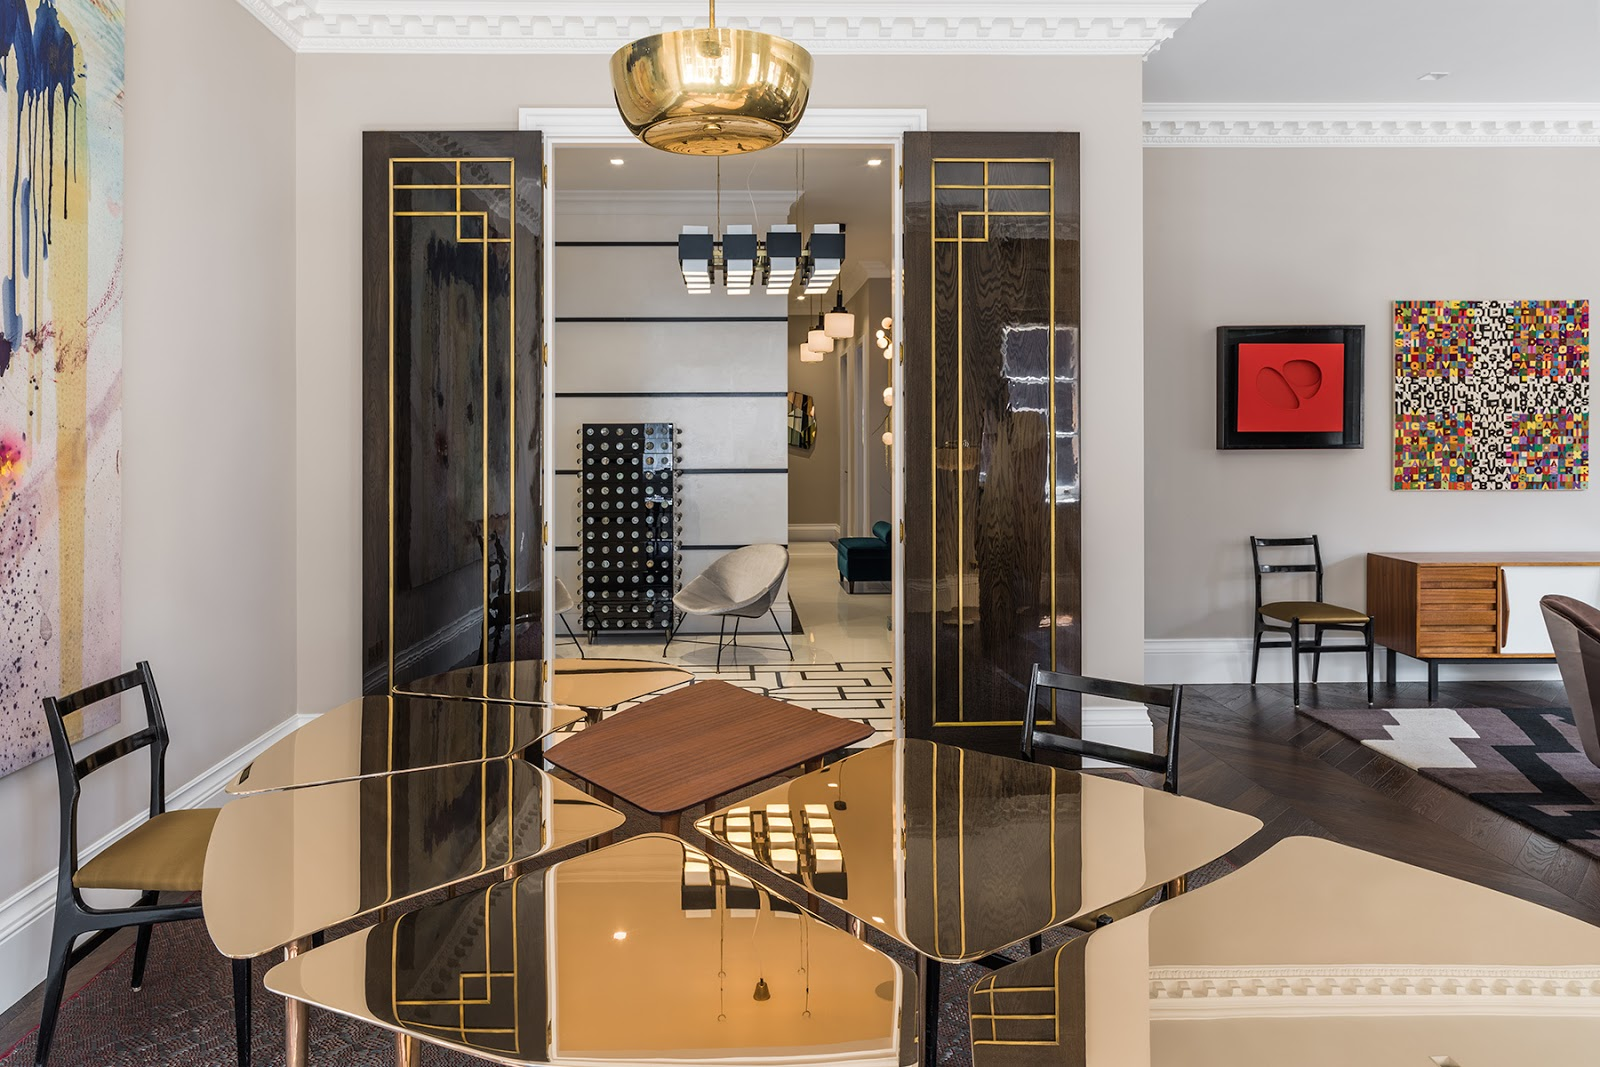 Luxurious eclectic London apartment with pattern geometric rugs, mid century modern furniture and art, dining room